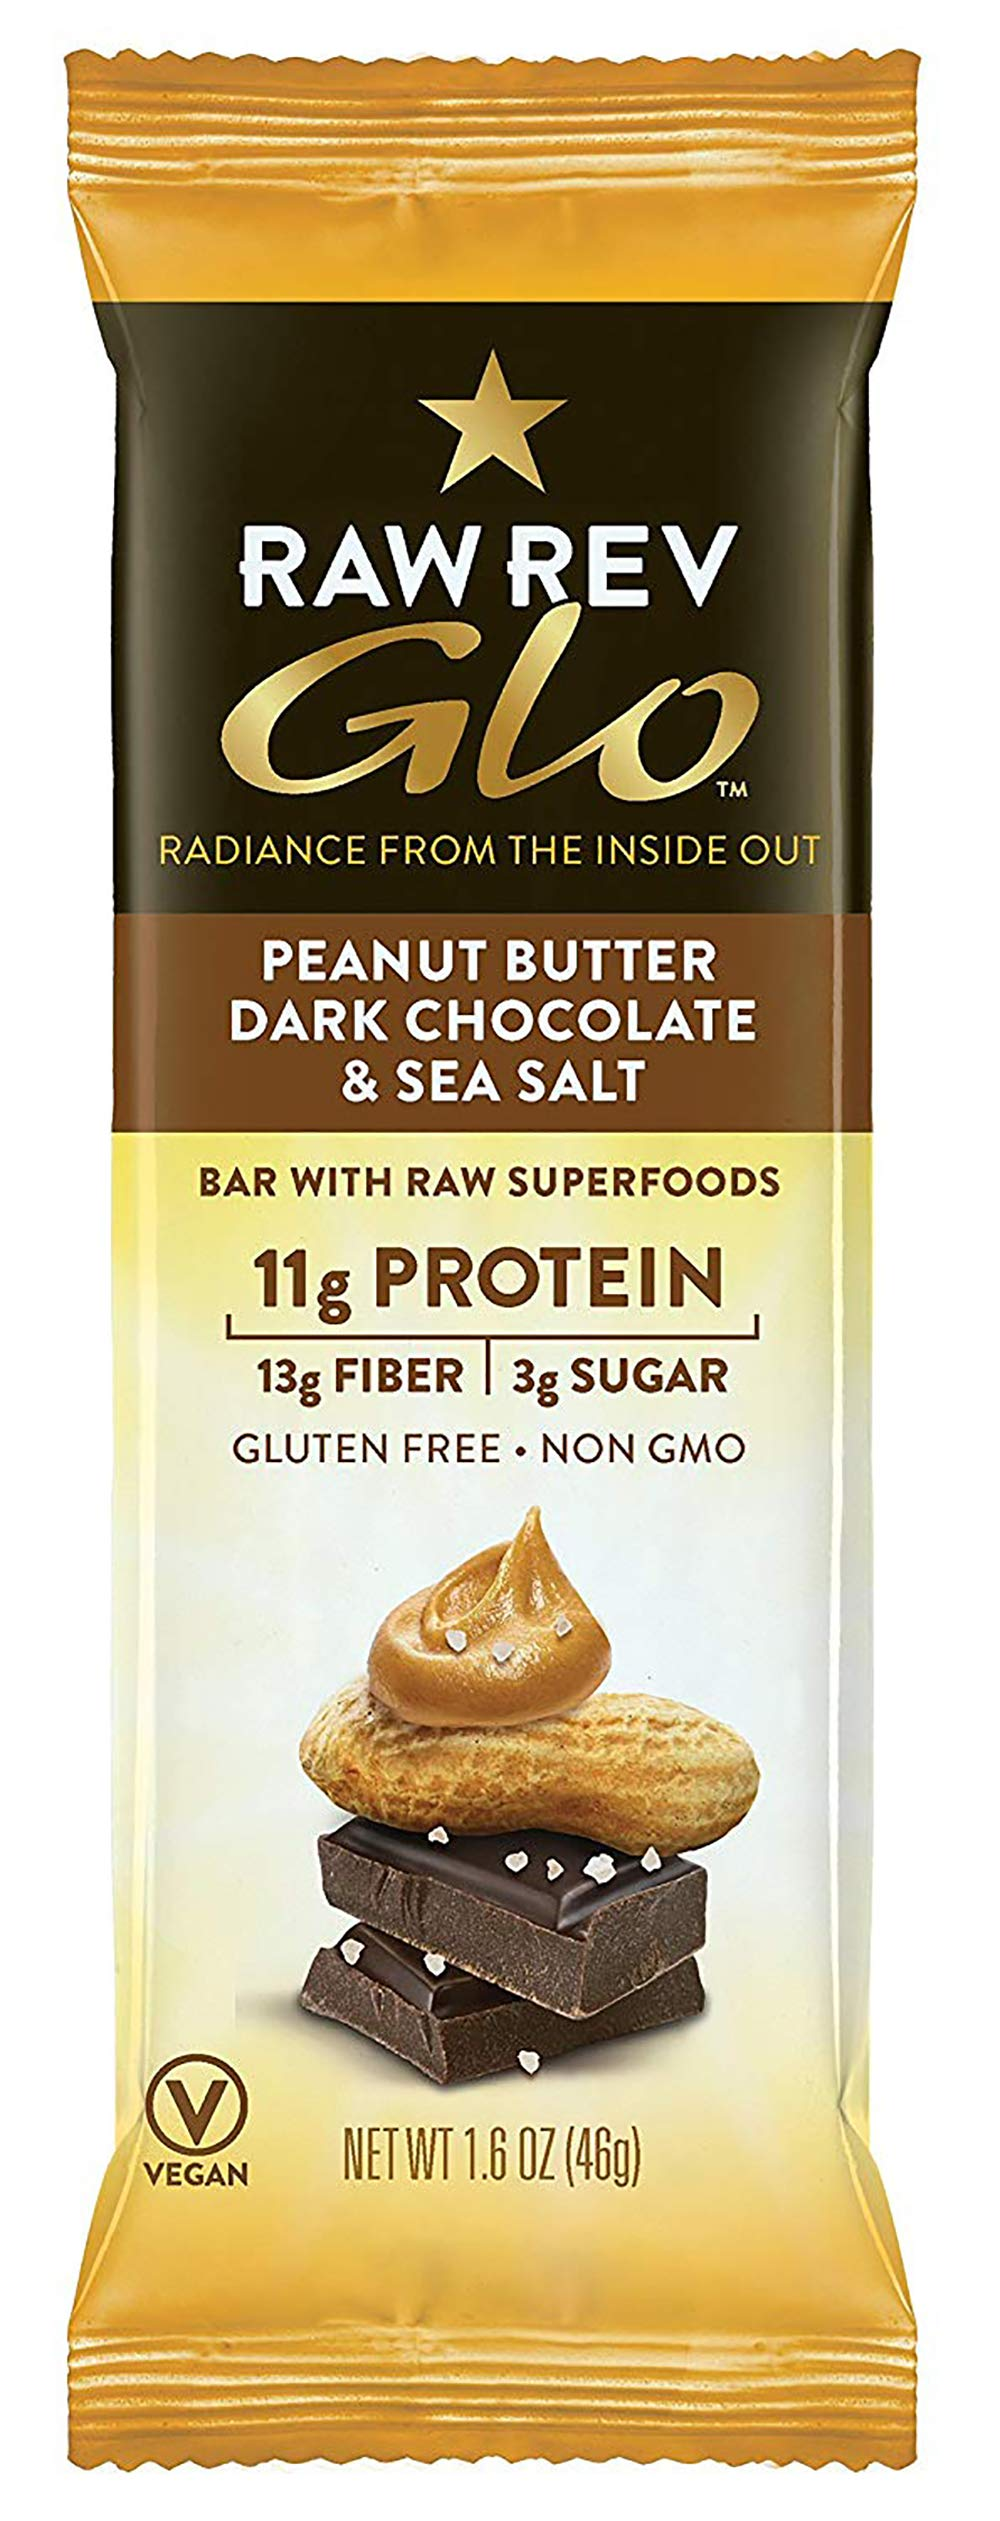 Raw Rev Glo Vegan, Gluten-Free Protein Bars – Peanut Butter Dark Chocolate 1.6 ounce (Pack of 144)